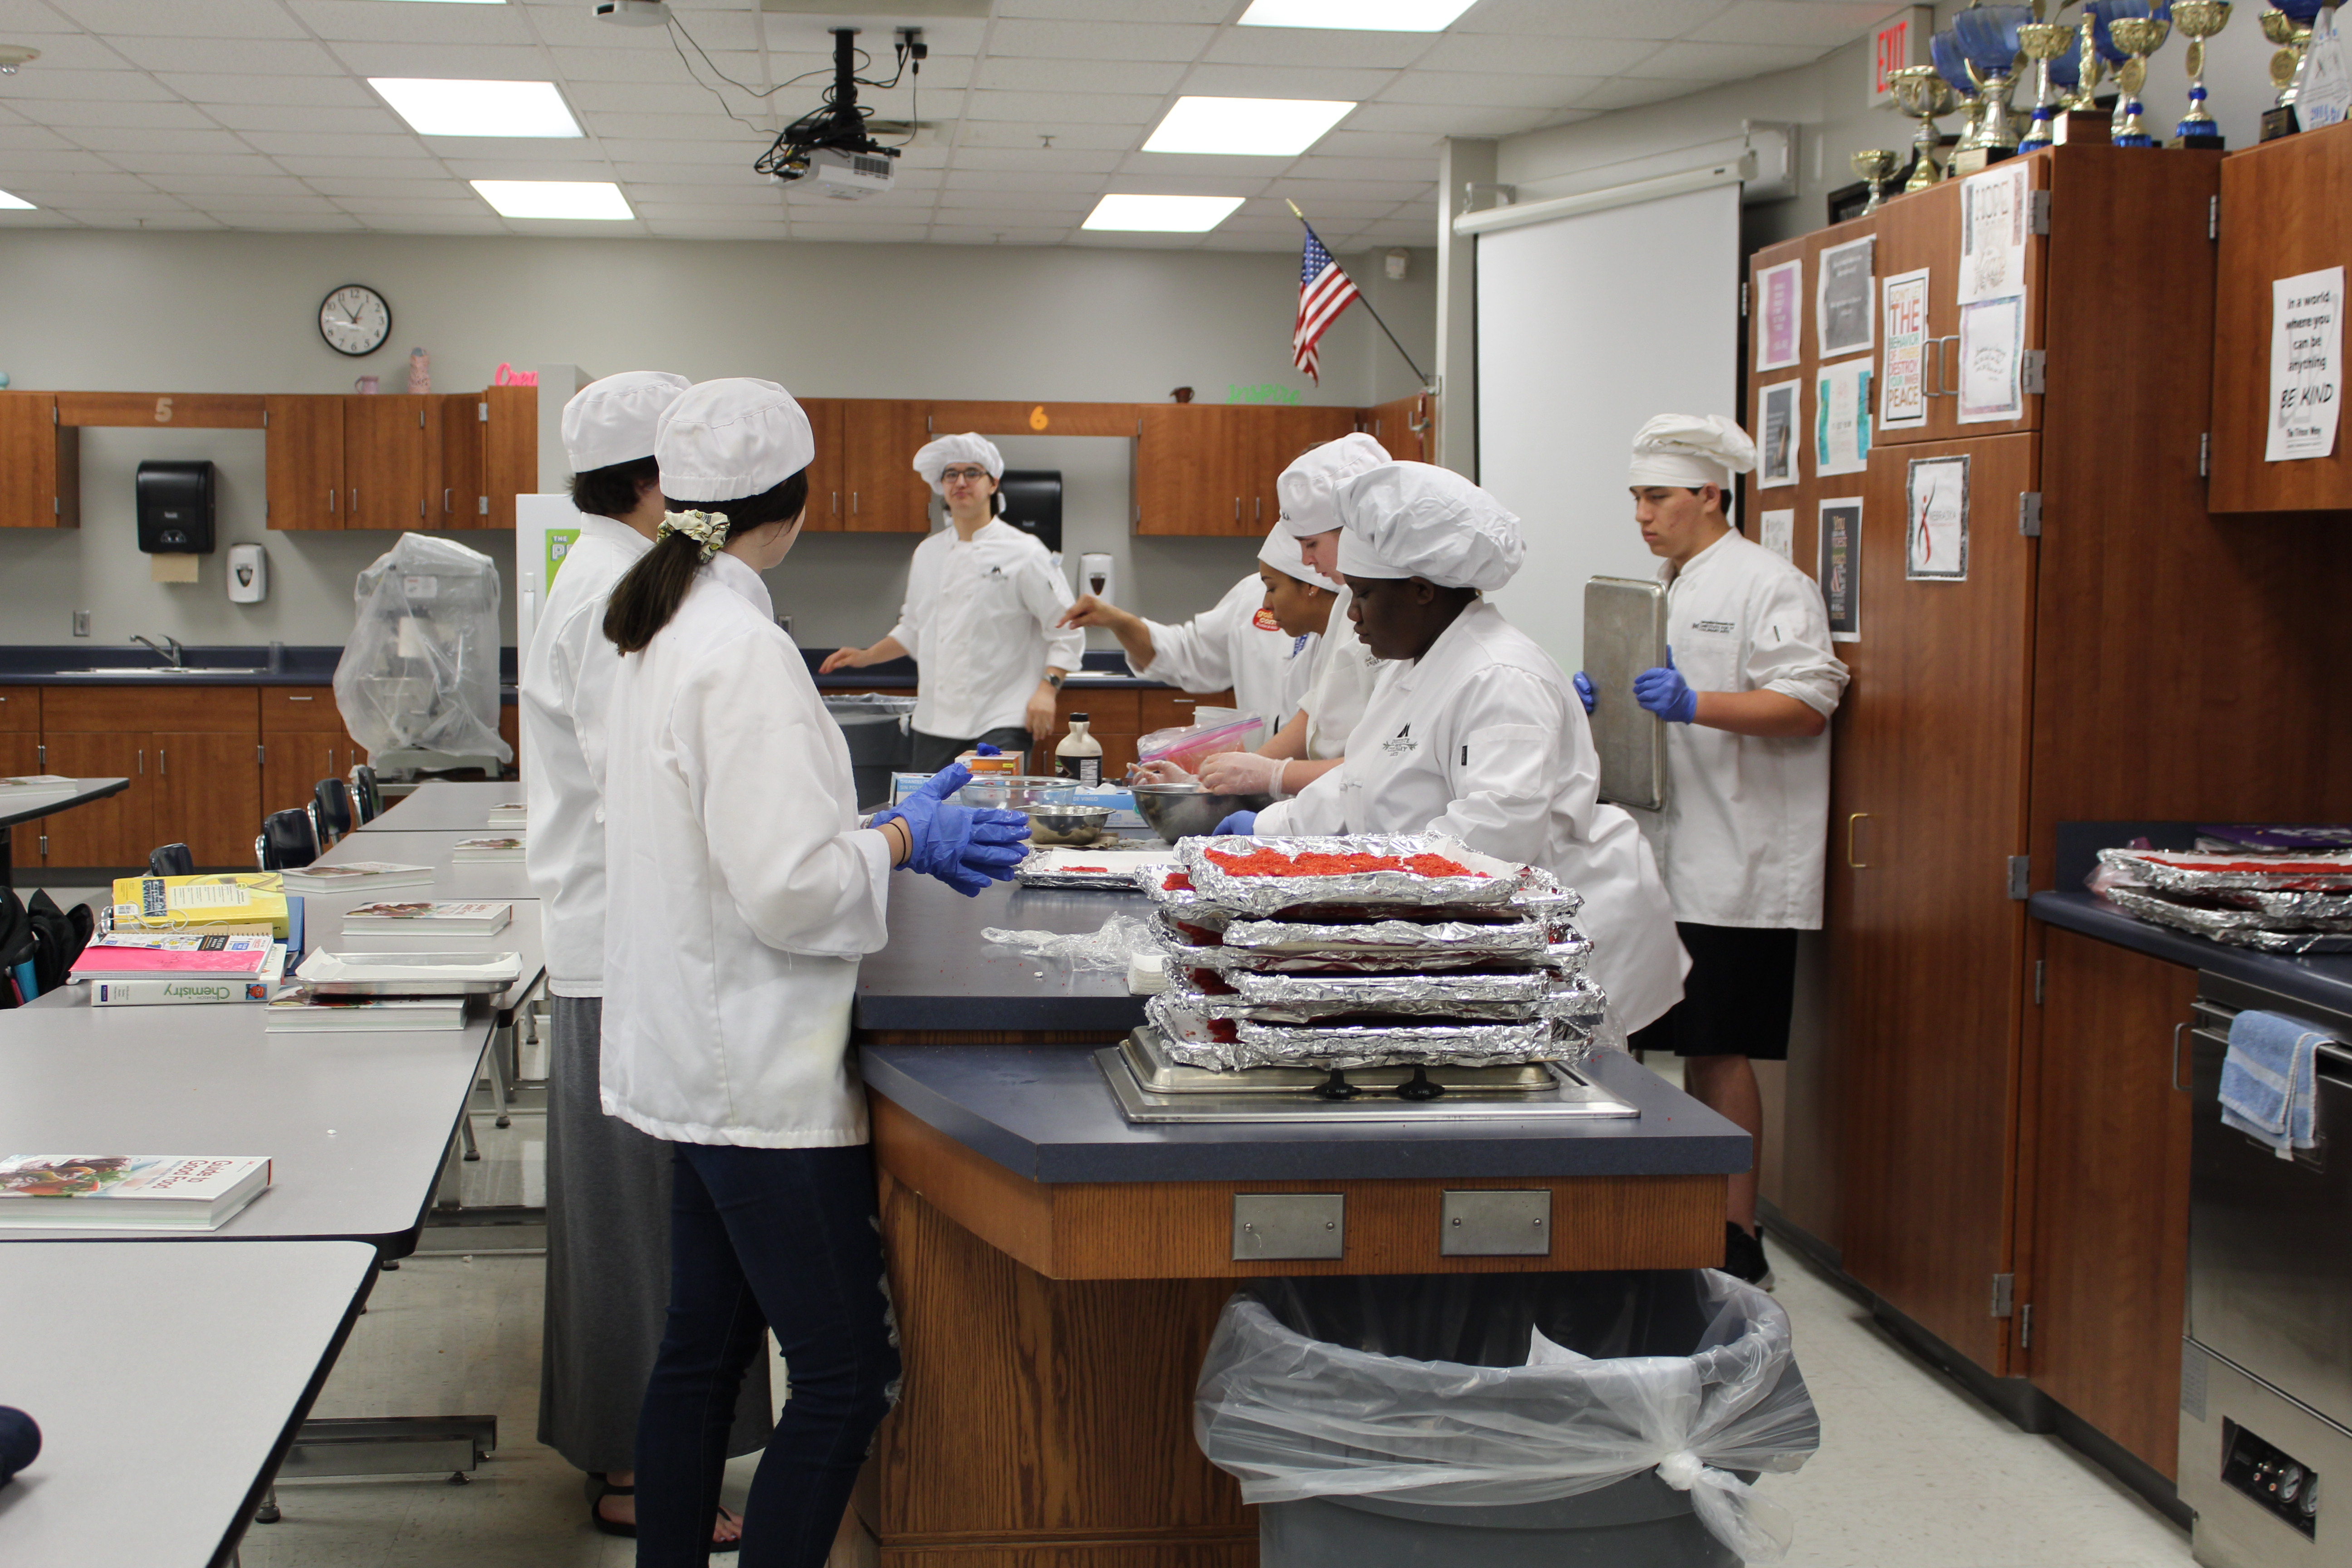 Titan ProStart culinary students to demo cooking skills at NE State Fair